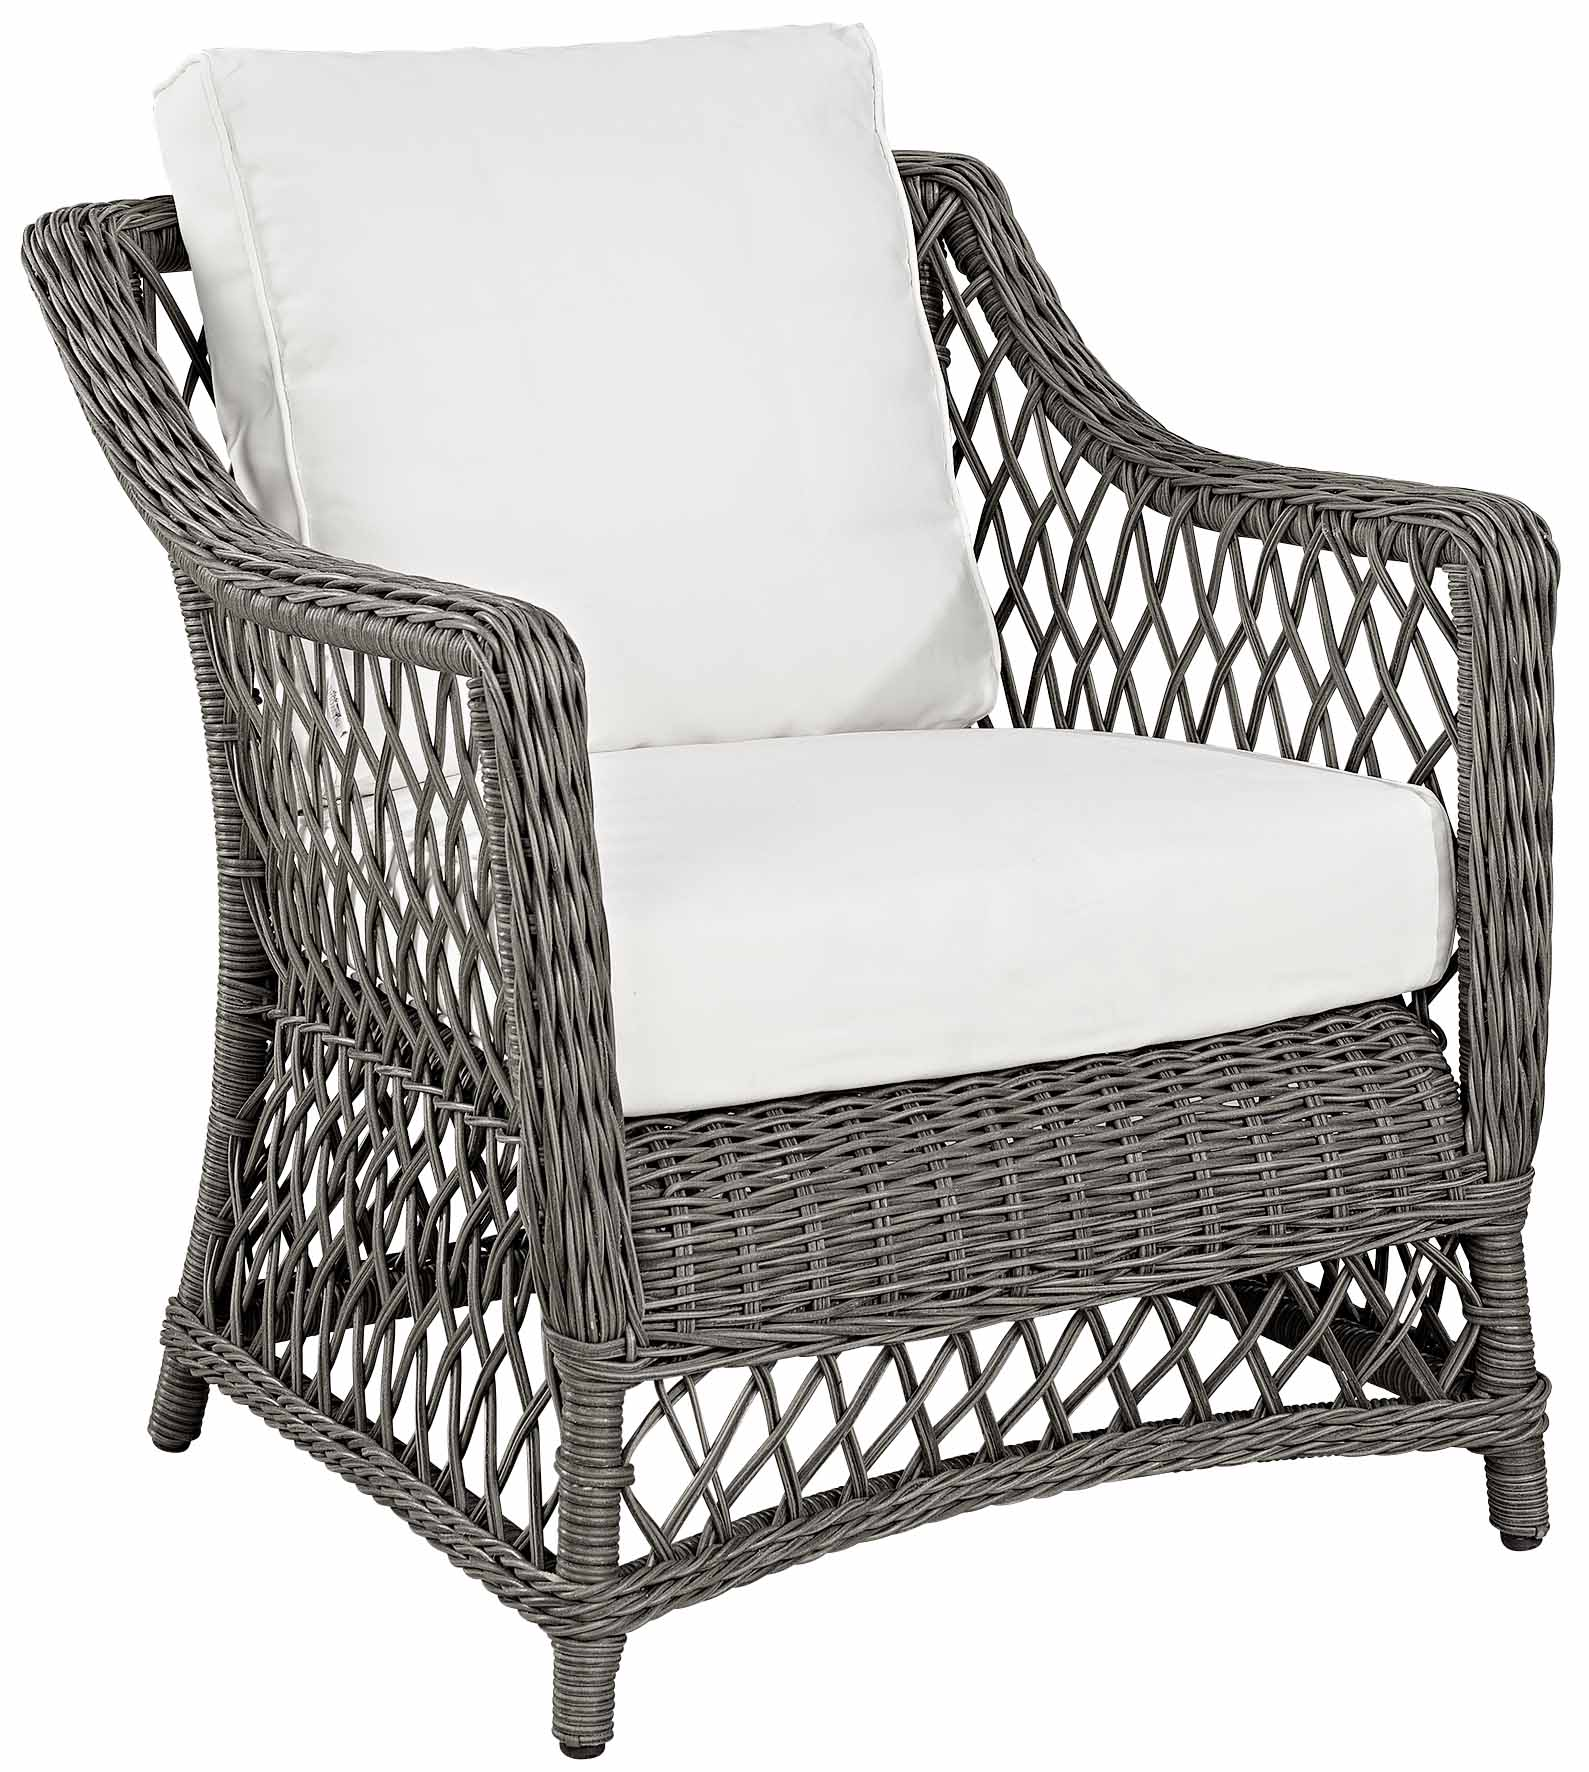 outdoor wicker chairs nz shower and stools artwood wood furniture rattan